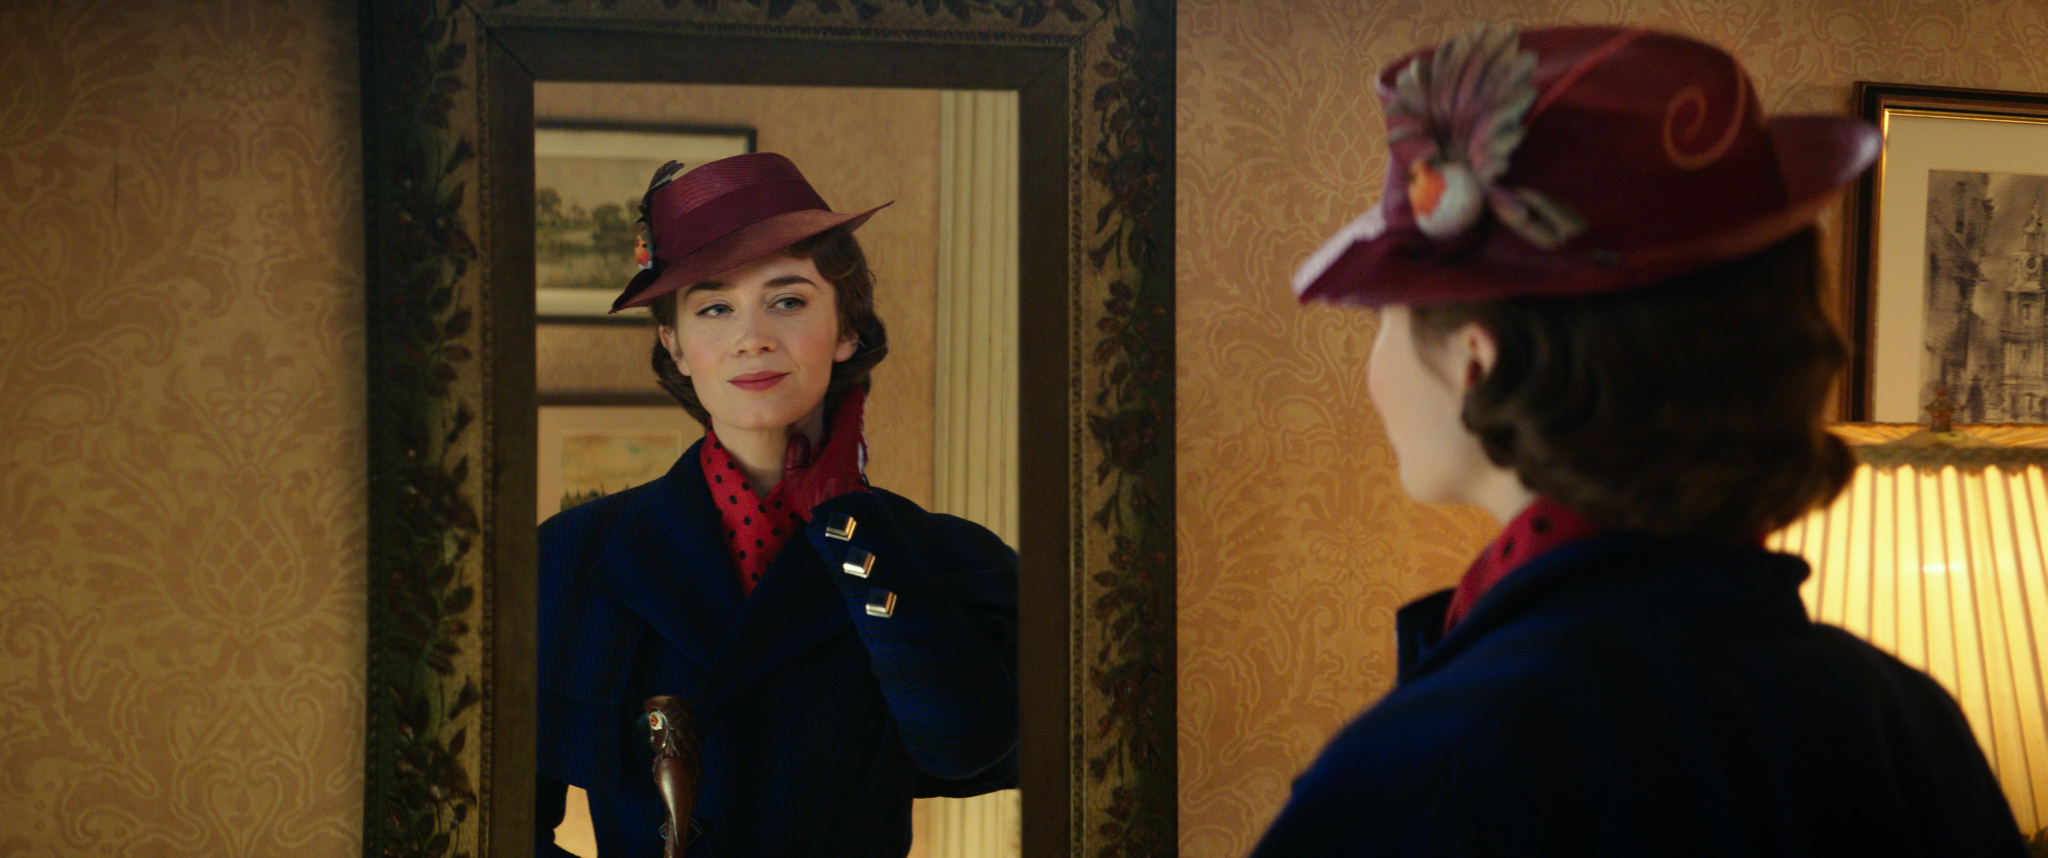 Get Ready For Mary Poppins Returns with these New Character Posters and an Exclusive Sneak Peek from Disney